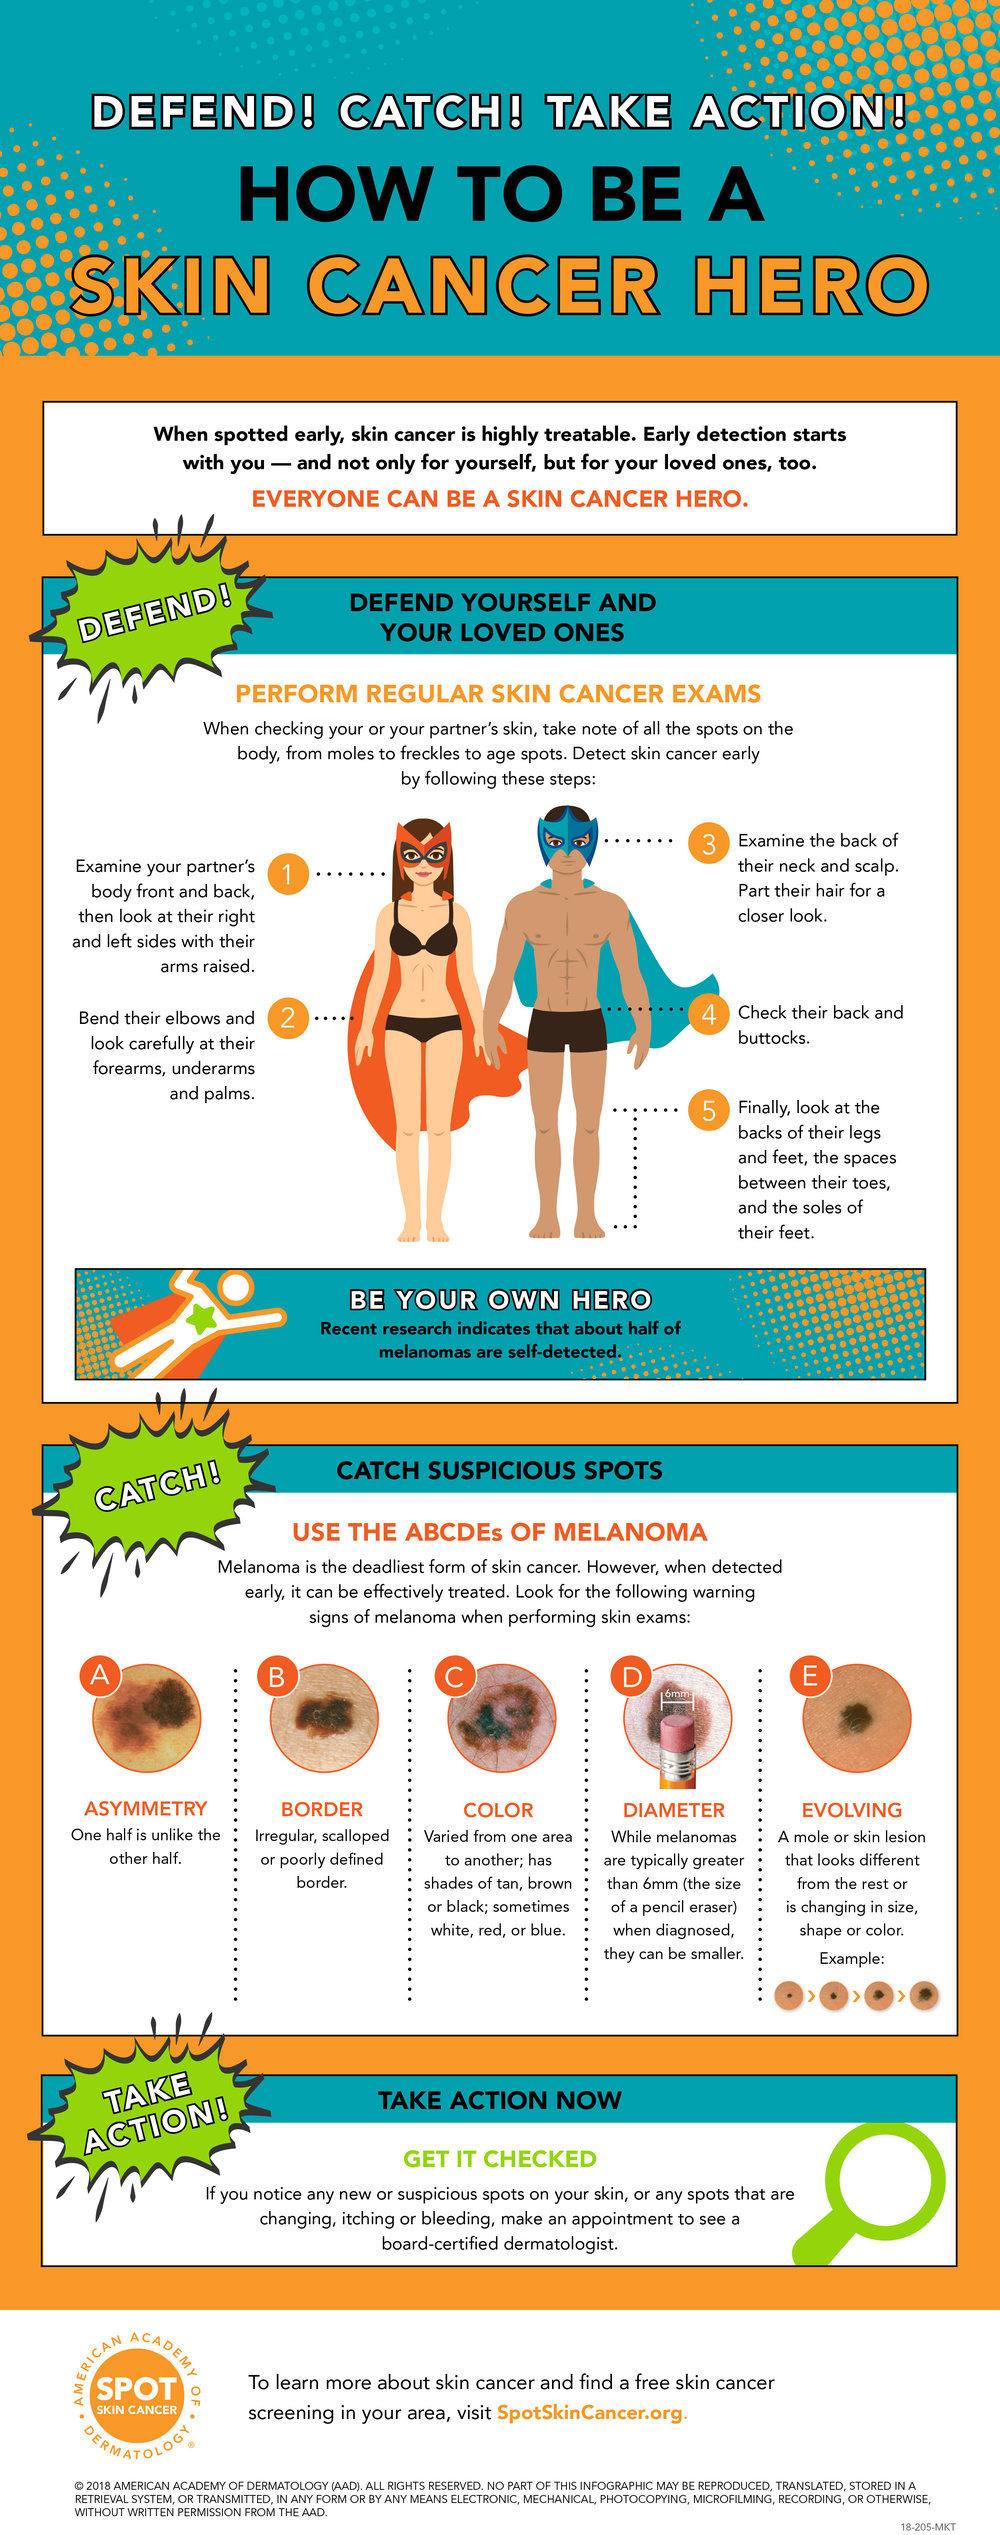 be-a-skin-cancer-hero-infographic-(2).jpg